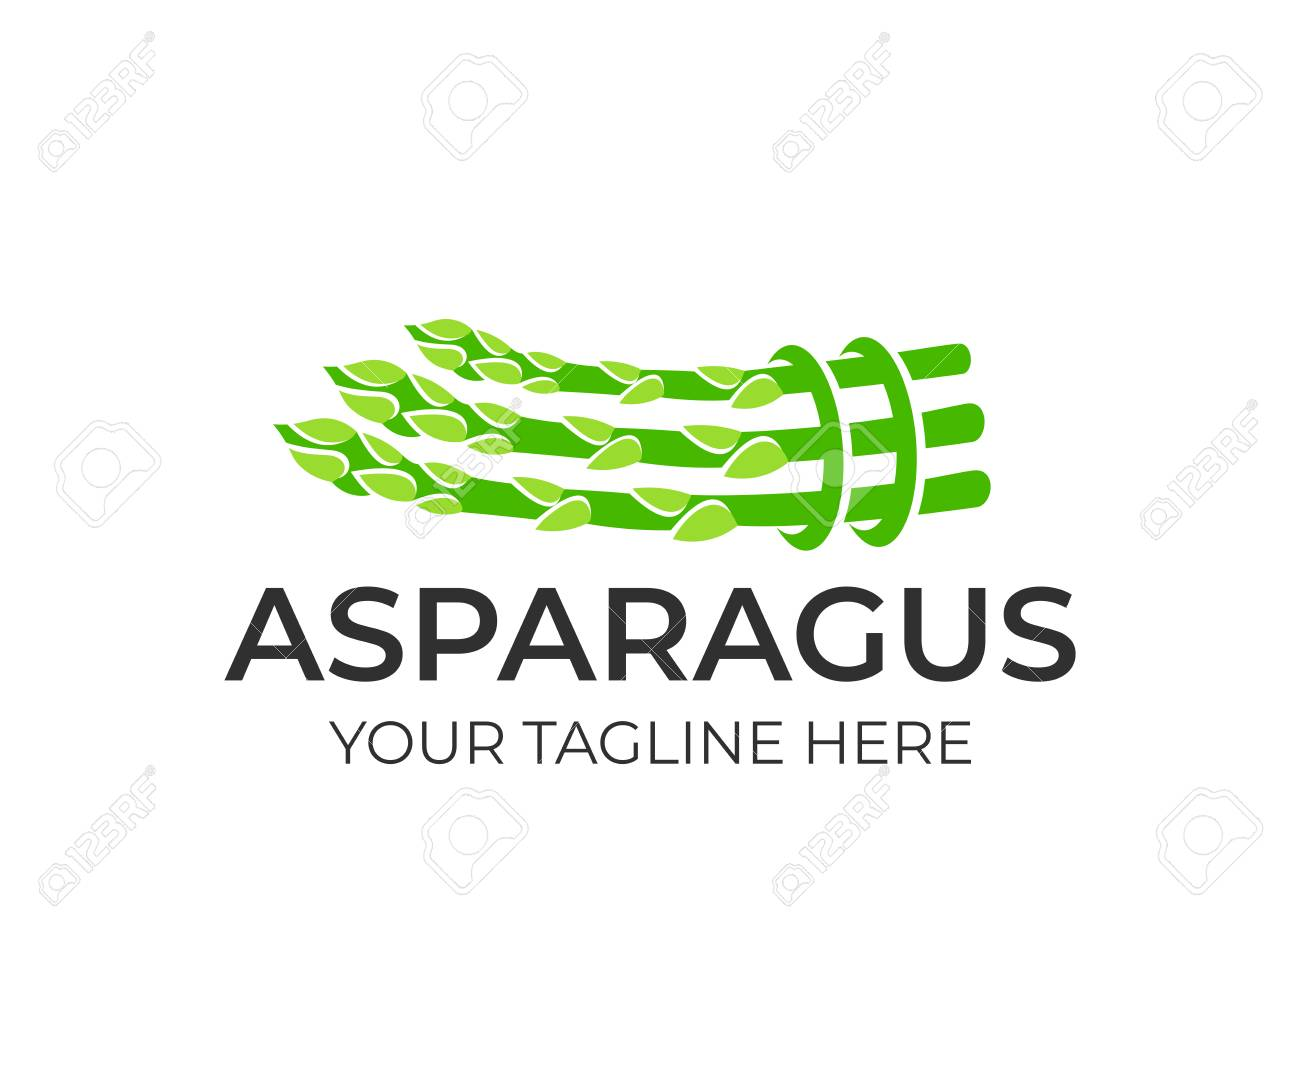 Asparagus plant, tied in bundle, logo design. Natural and organic food, agriculture and nature, vector design and illustration - 105836403